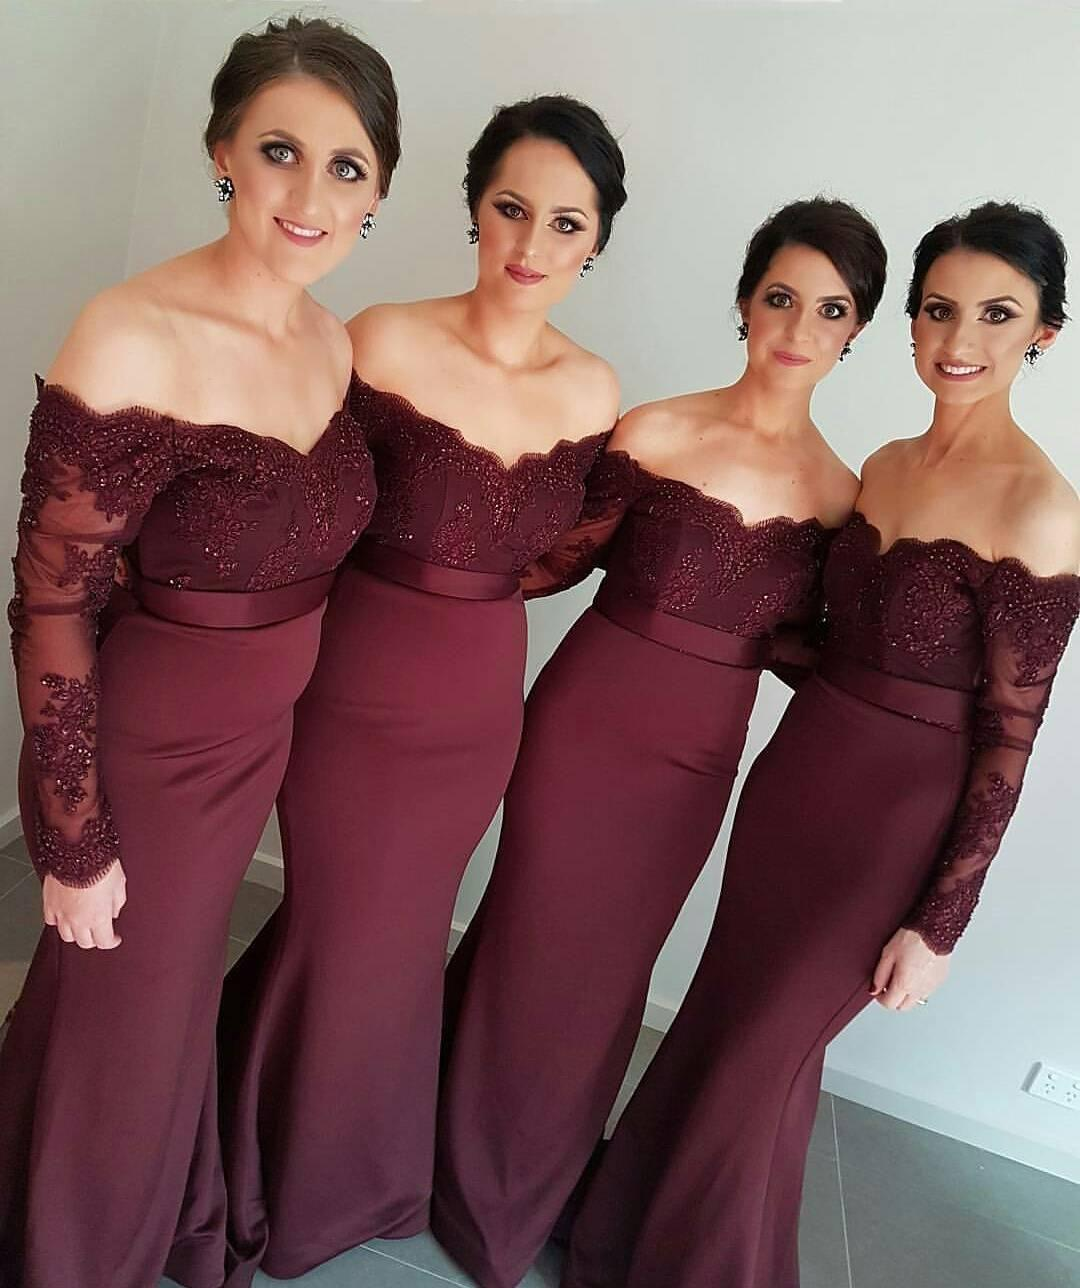 Wedding party long sleeves mermaid bridesmaid dresses 2016 maroon wedding party long sleeves mermaid bridesmaid dresses 2016 maroon dark red burgundy satin lace off the shoulder beads maid of honor dress bridesmaid dresses ombrellifo Gallery